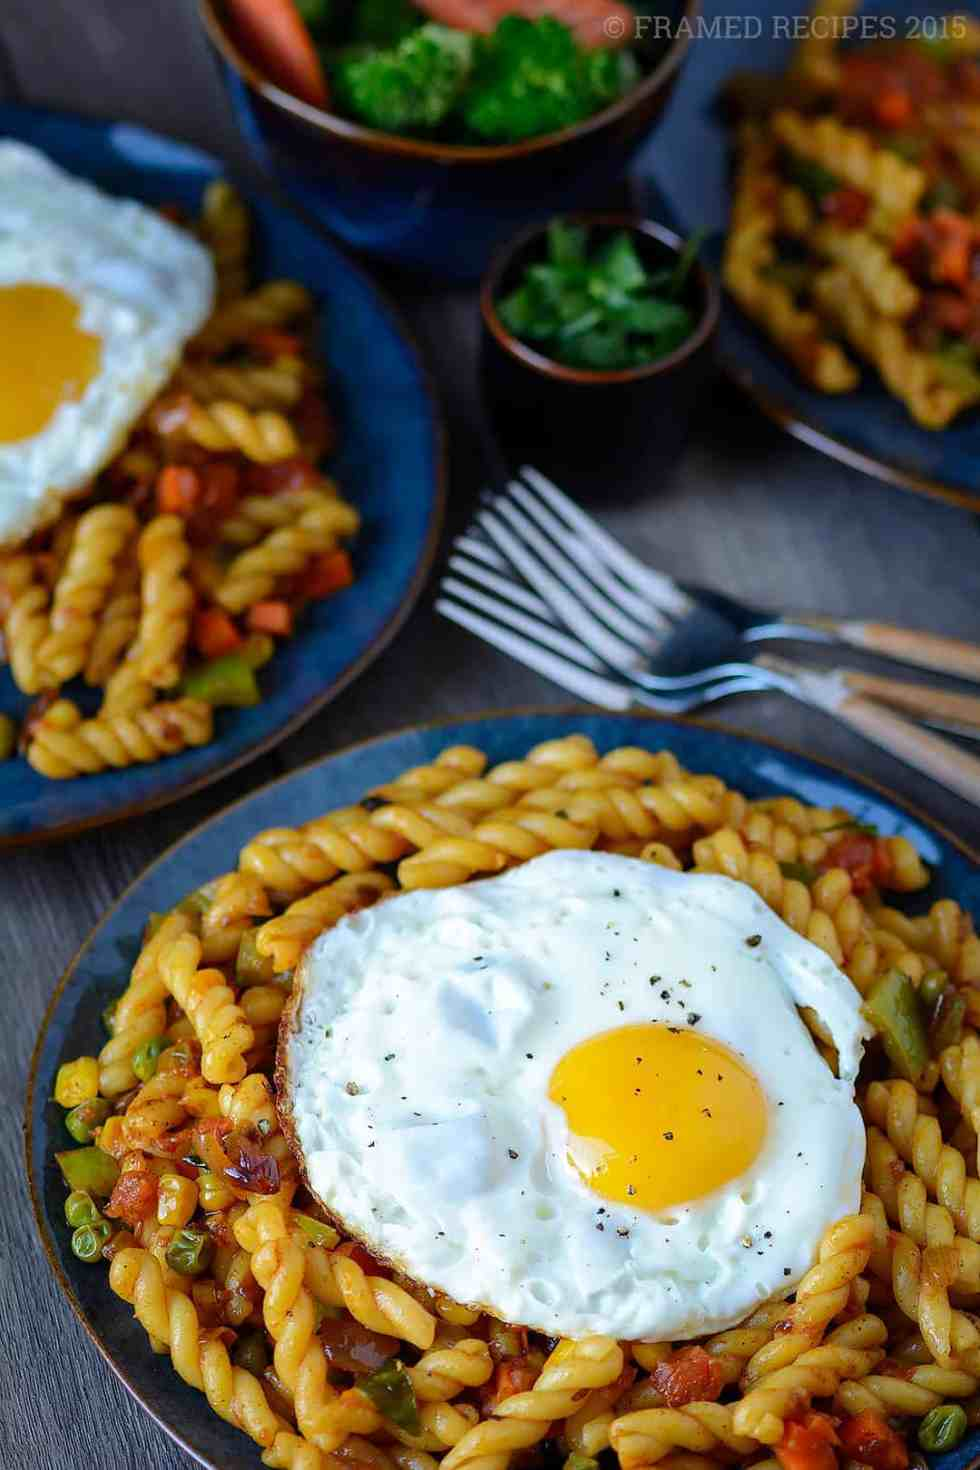 fusion pasta recipe - pasta with Indian flavors topped with  over-easy eggs and a side of steamed broccoli and carrots.